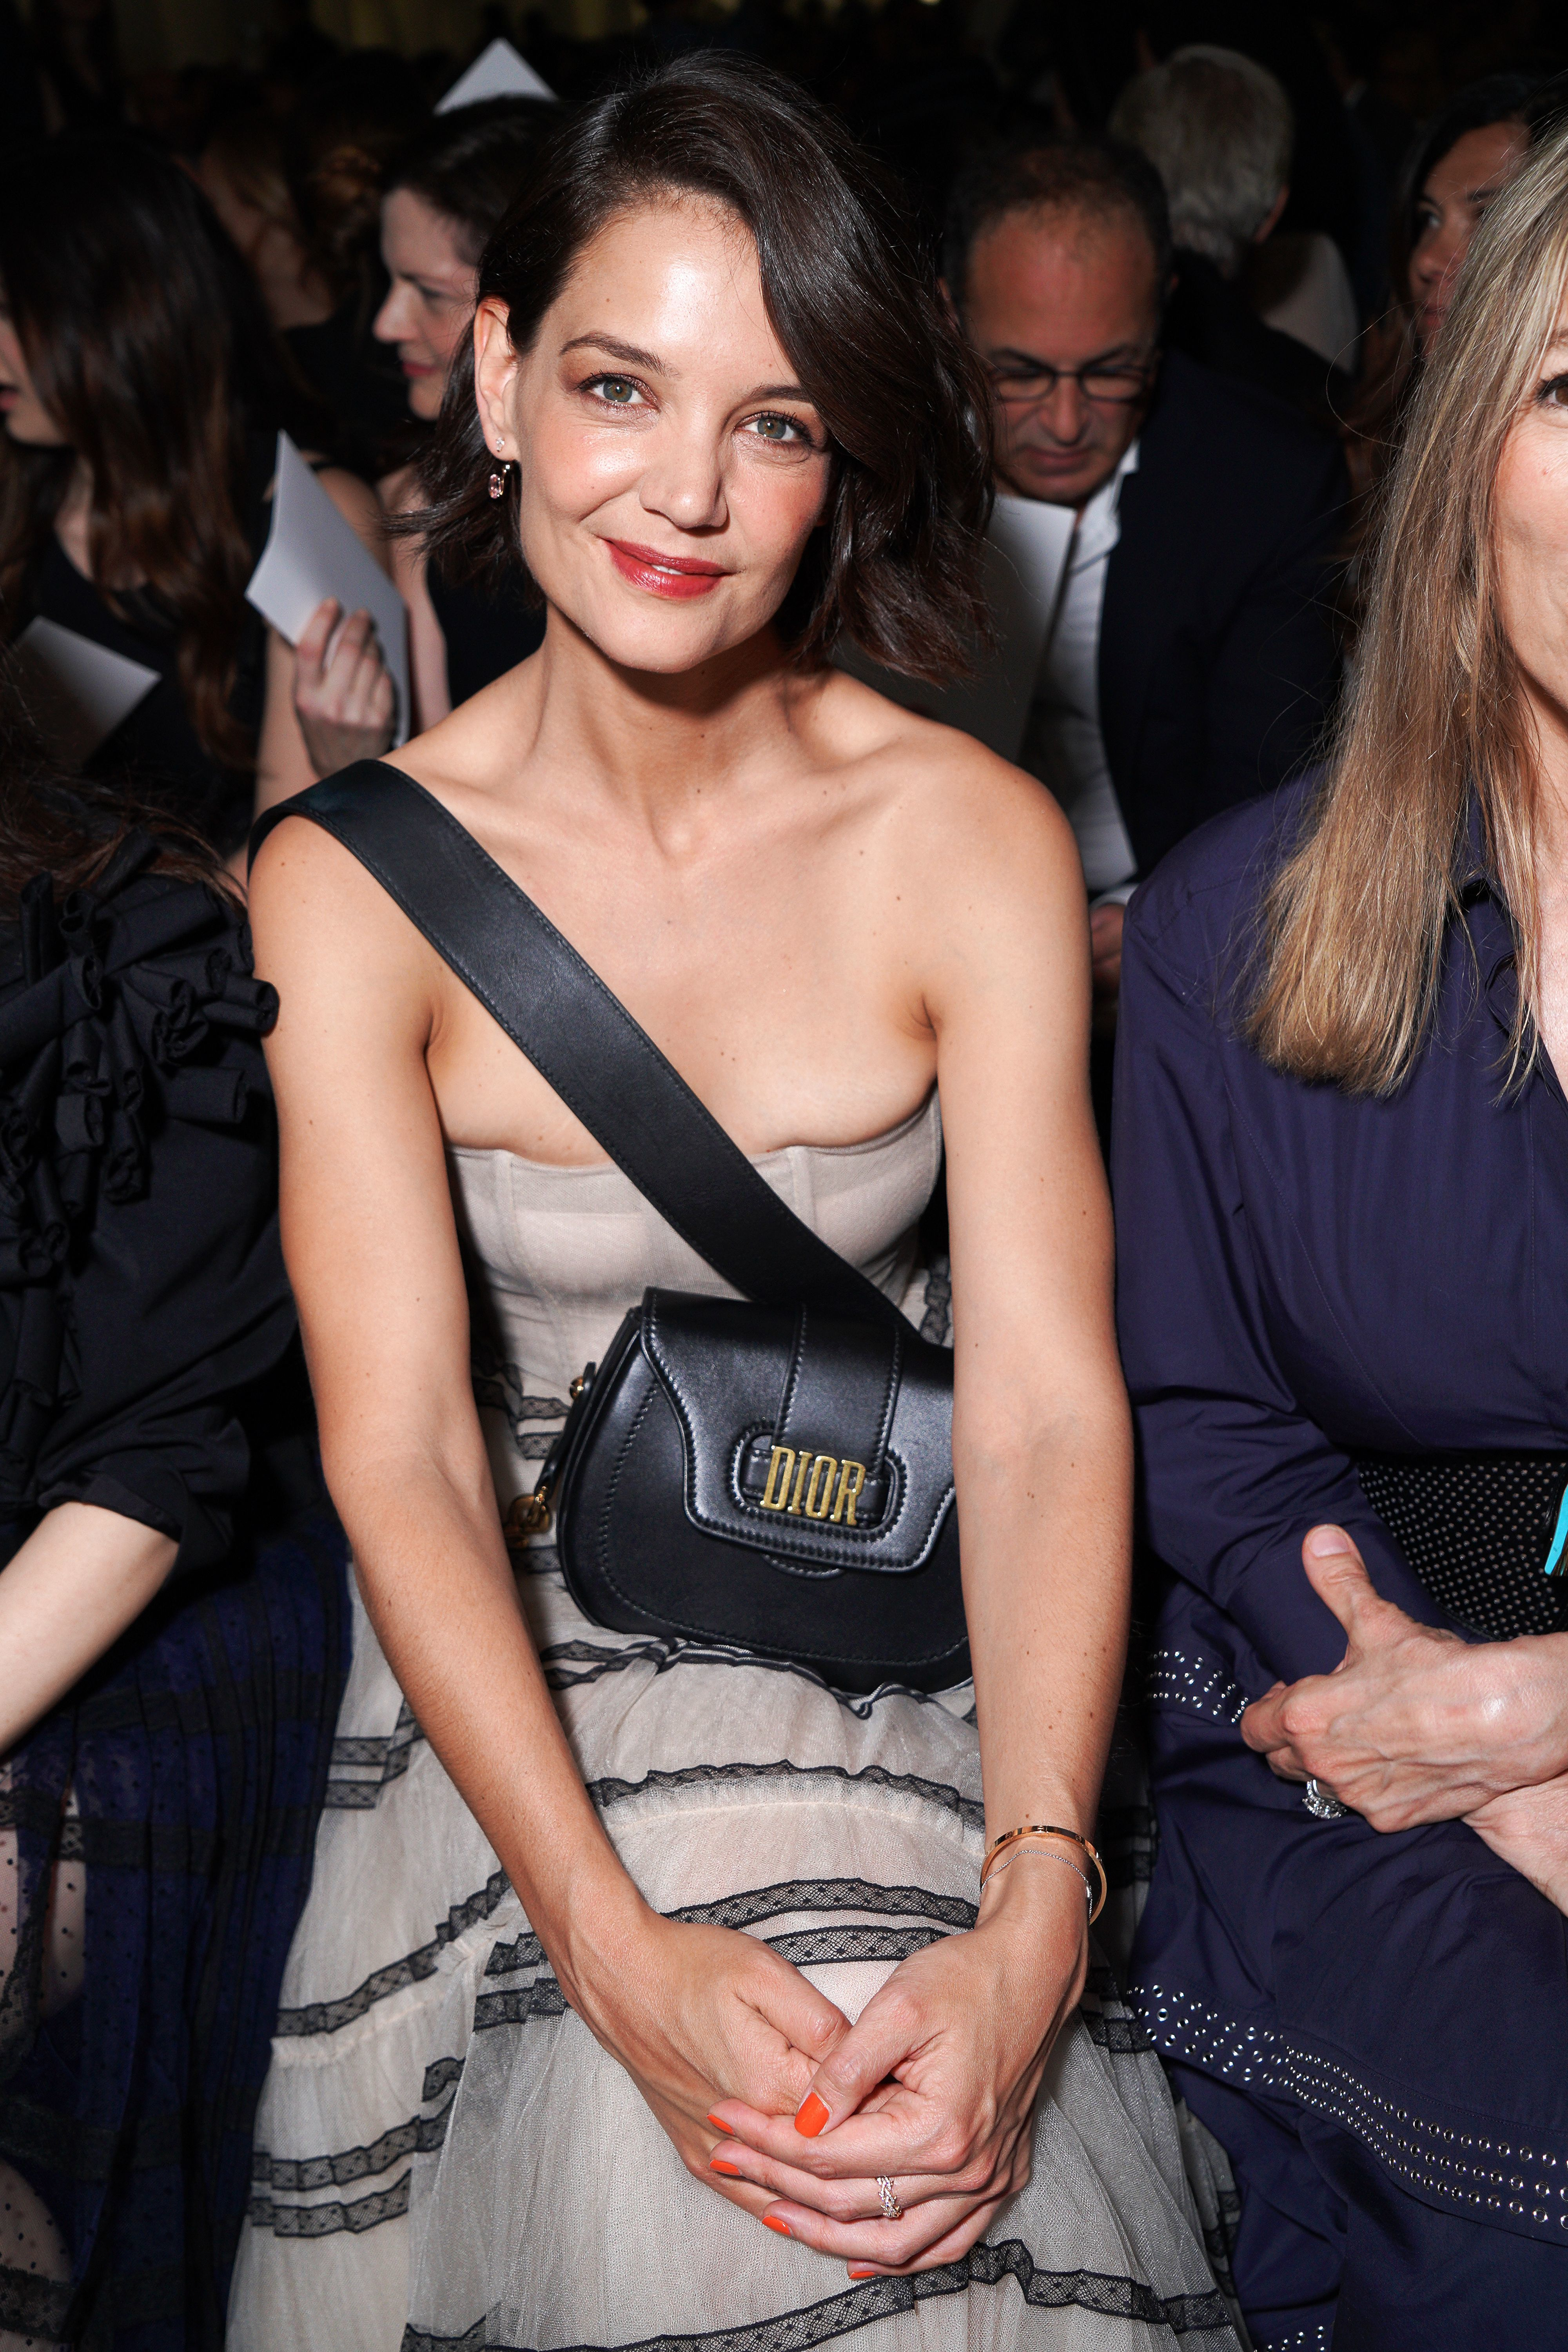 Katie Holmes appears in the front row of the Christian Dior show for Fall/Winter 2018 at Haute Couture Fashion Week on July 2, 2018.